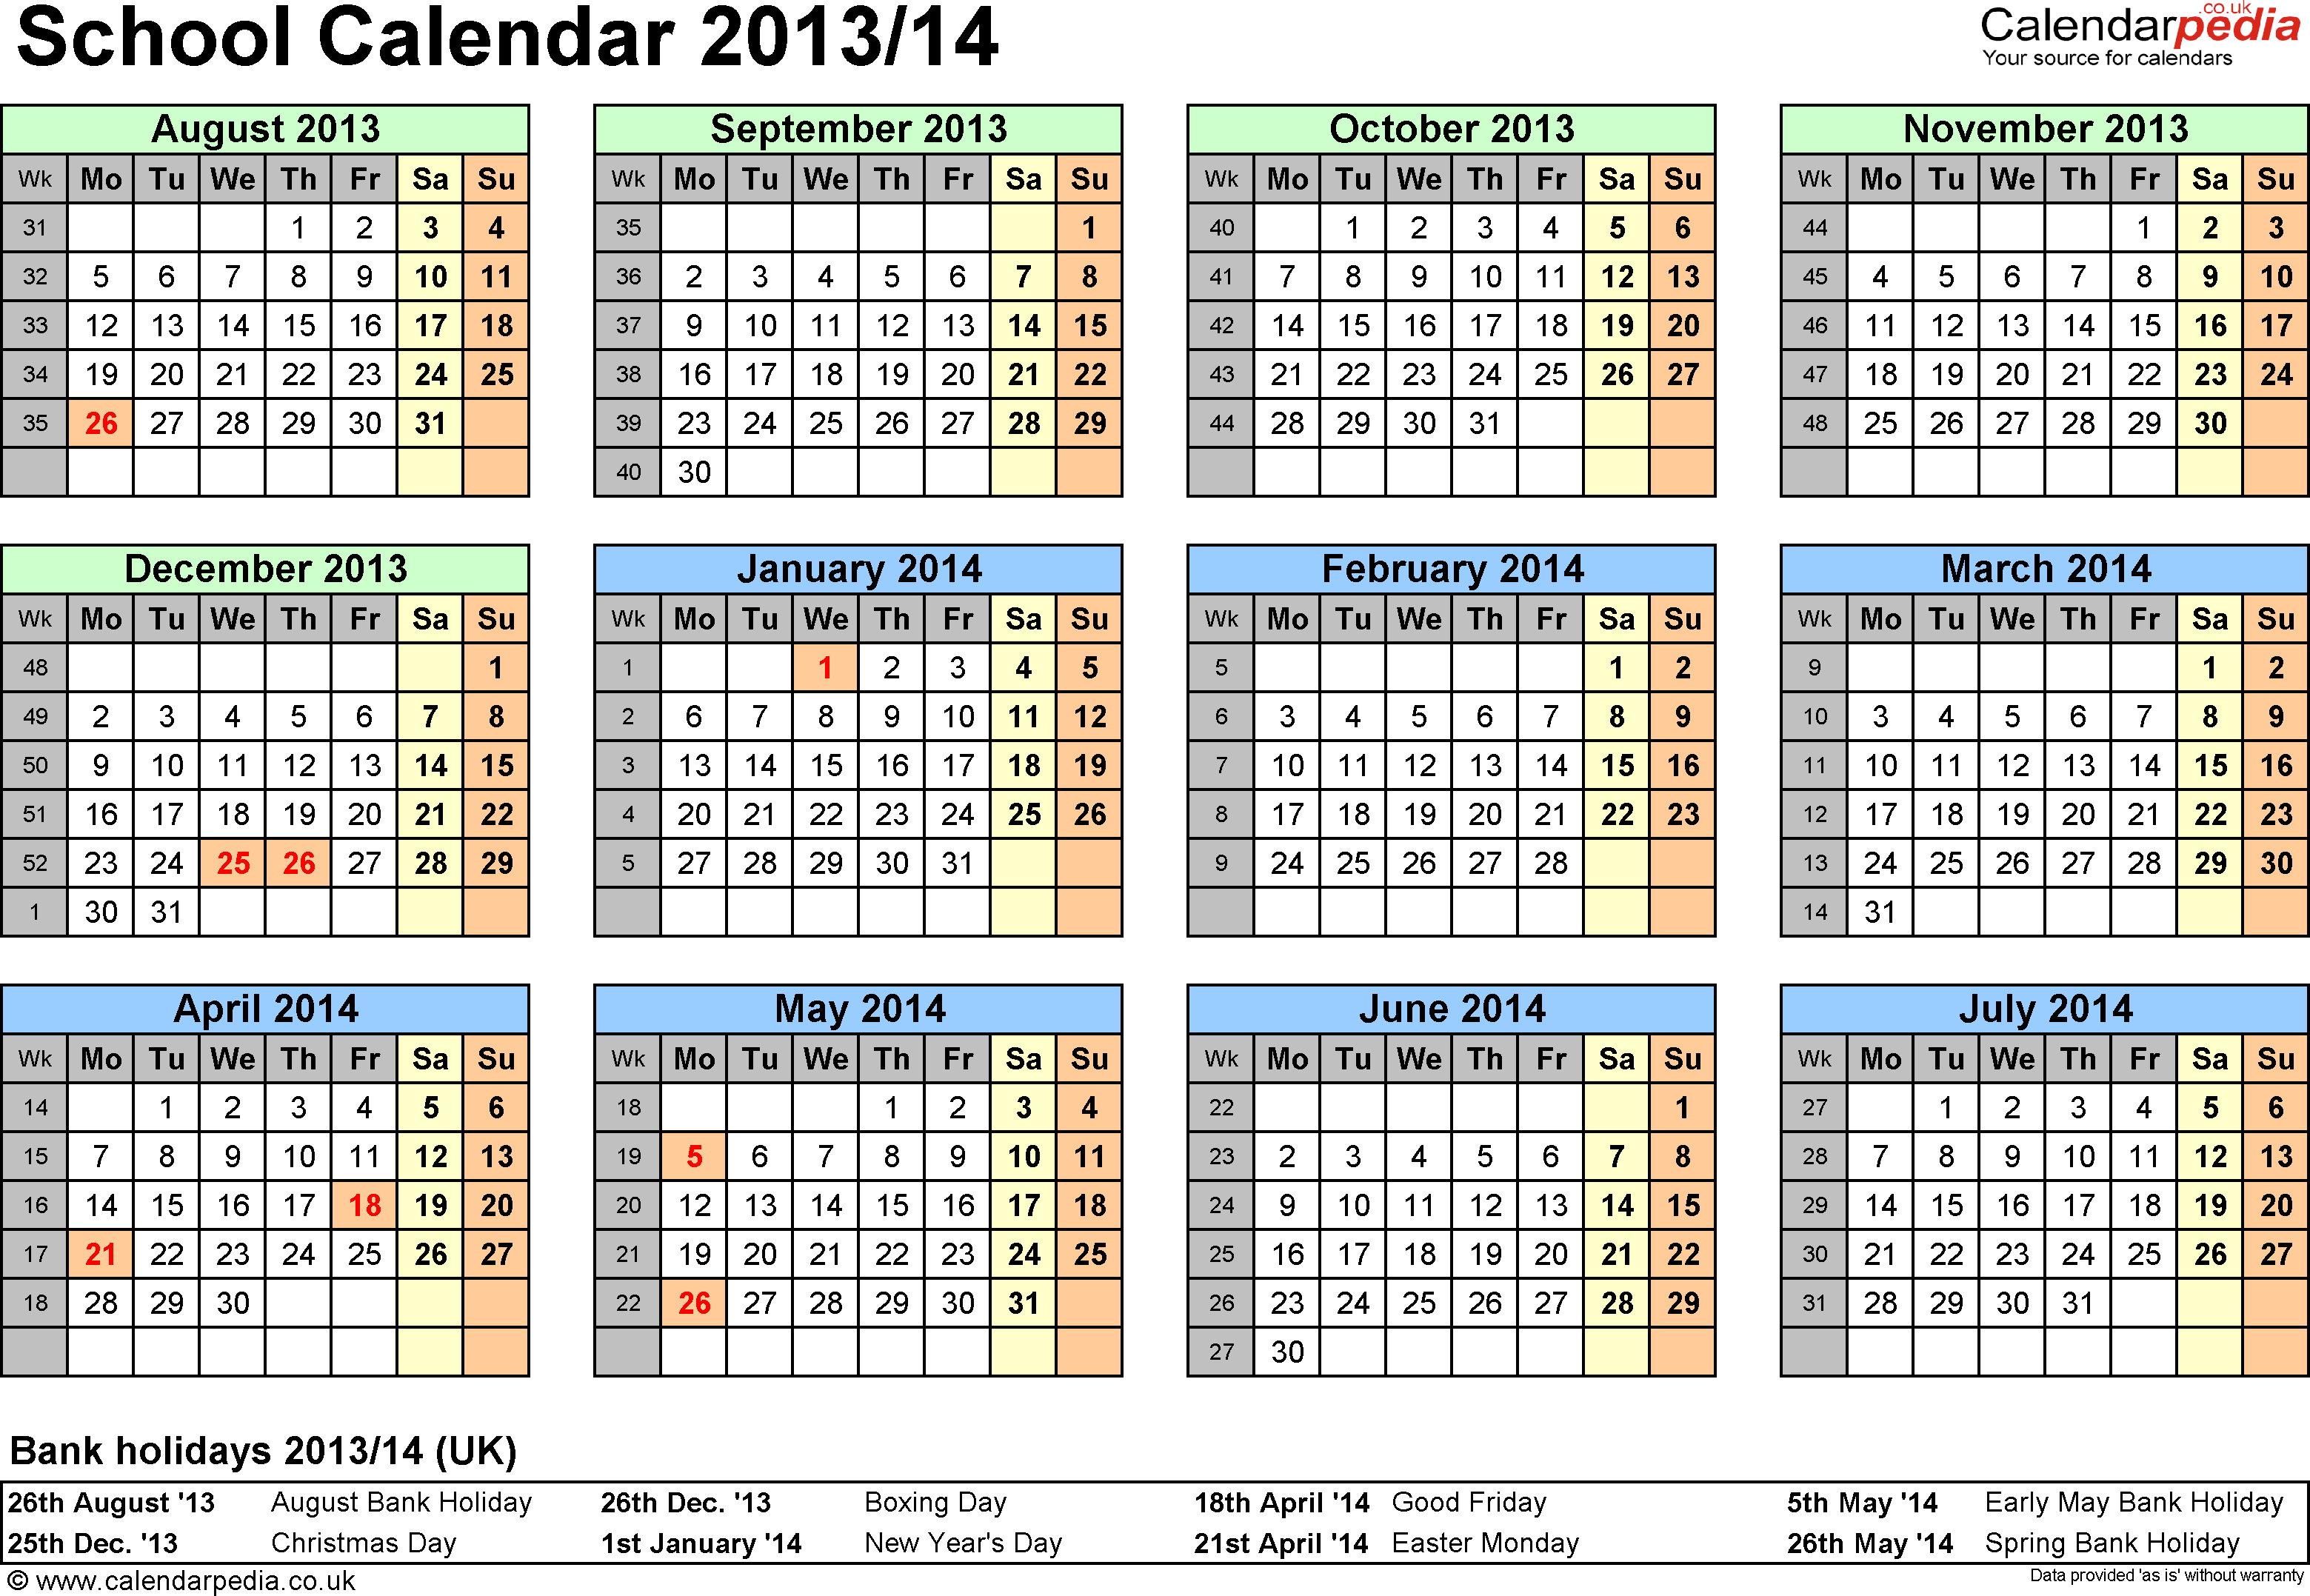 Template 4: School year calendars 2013/14 as PDF template, year at a glance, 1 page